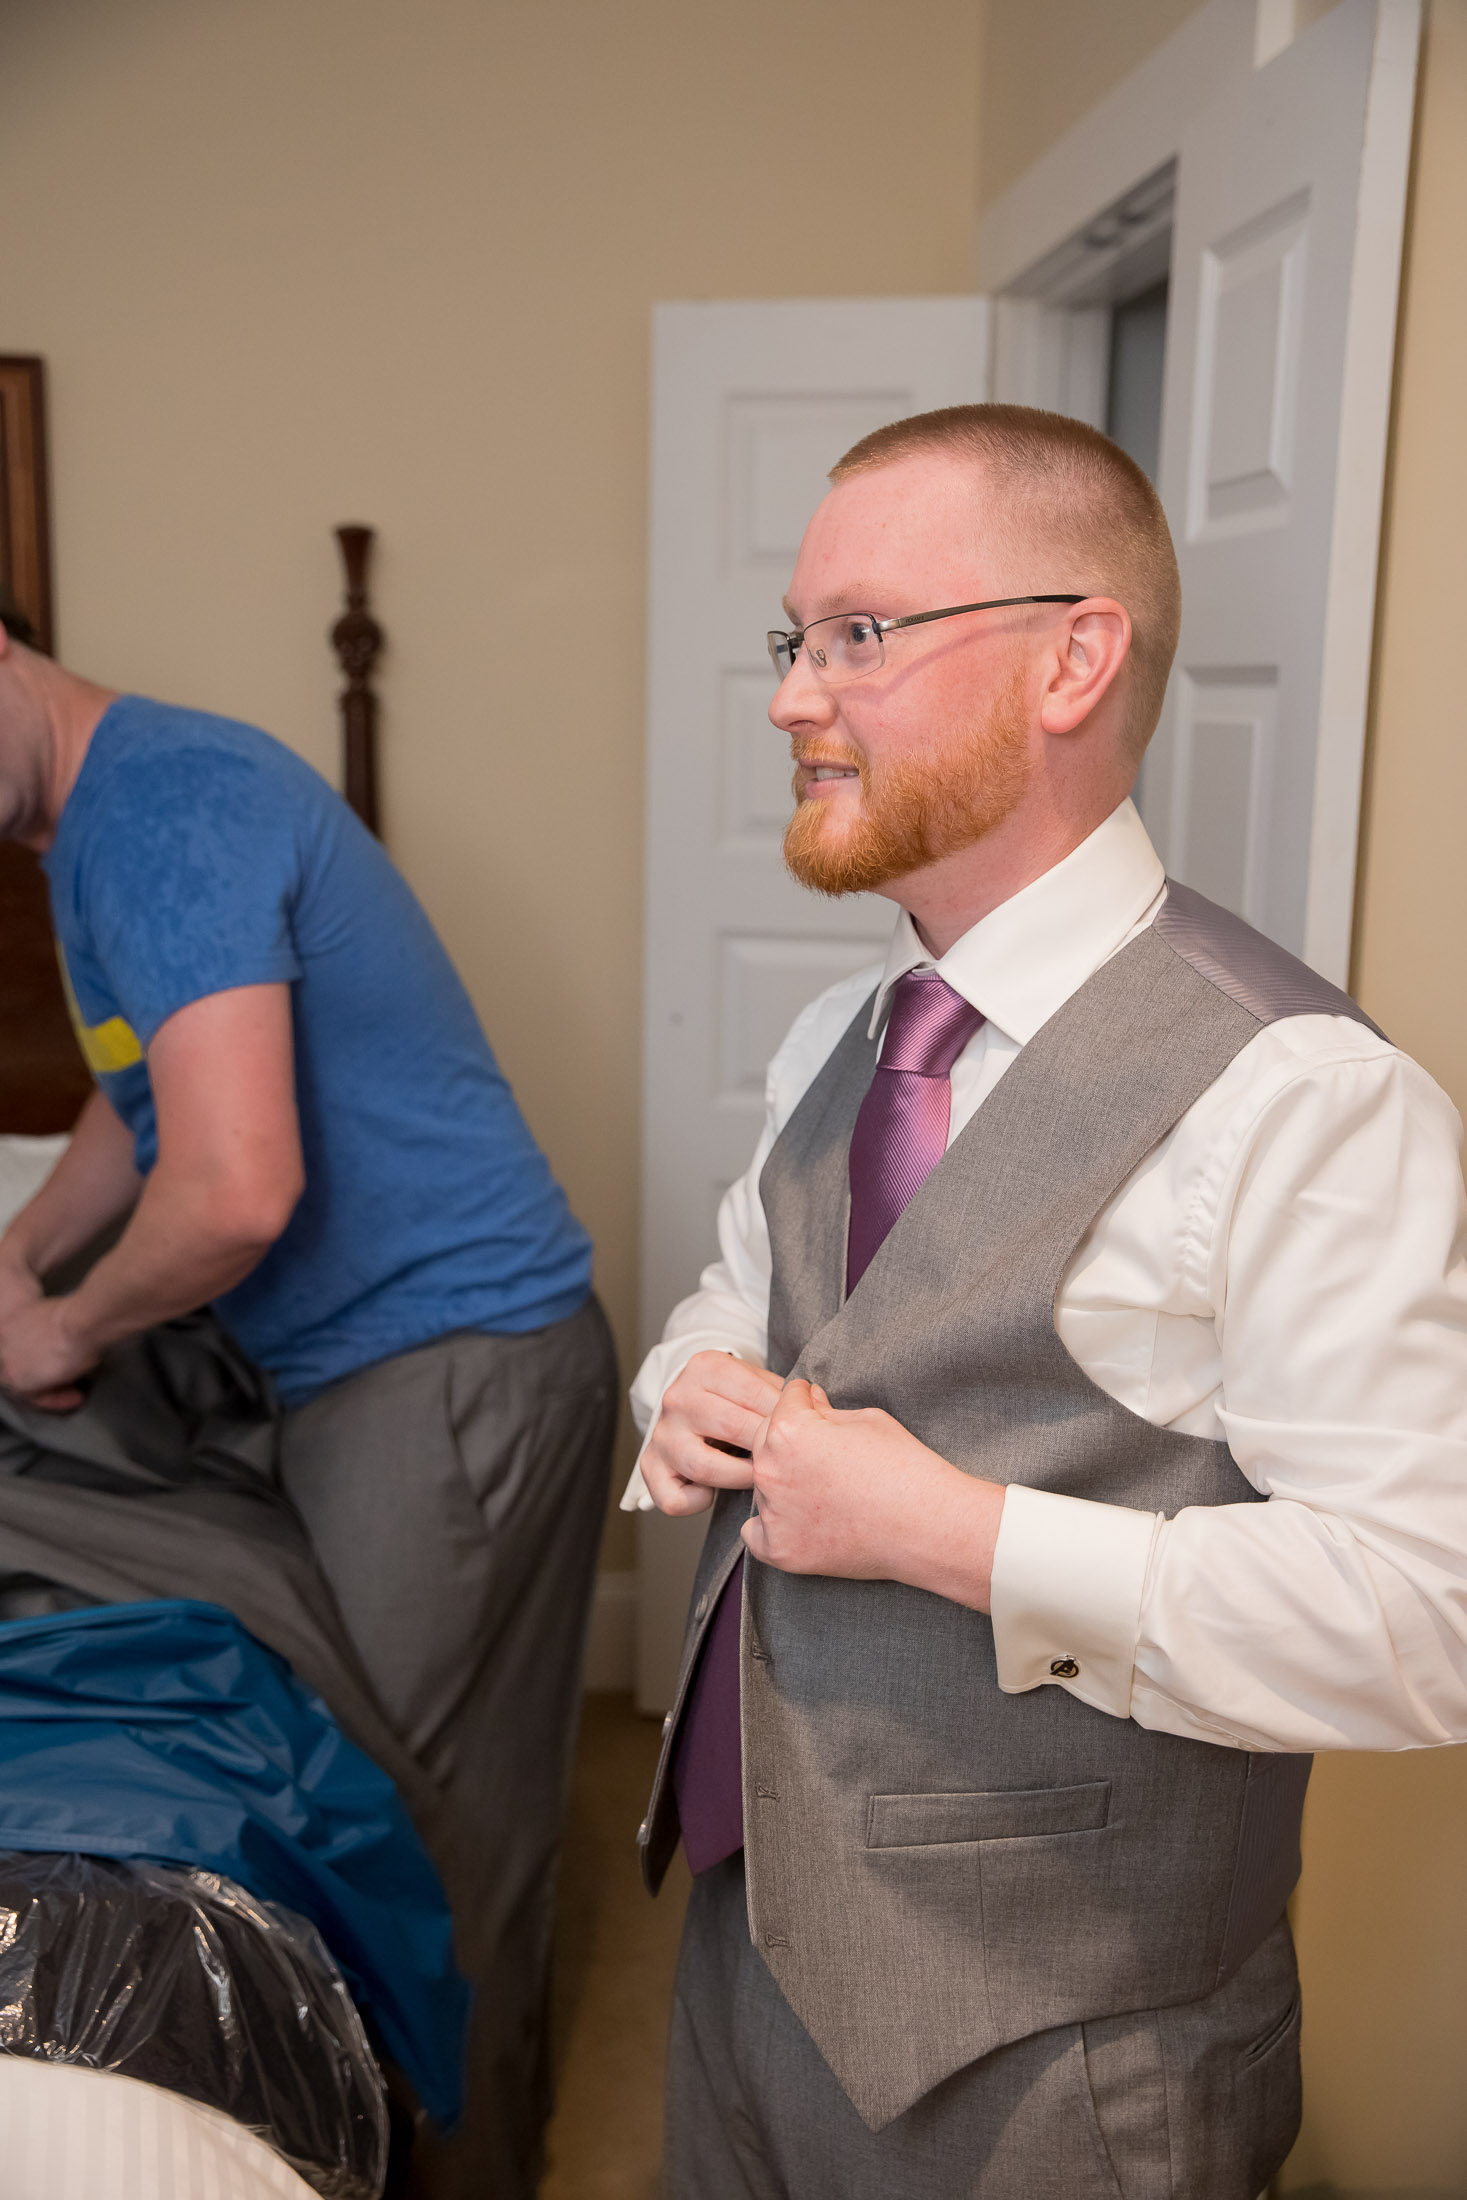 button vest, getting ready, wedding, groom, tracy jenkins photography, publick house, Massachusetts, new england,  photography